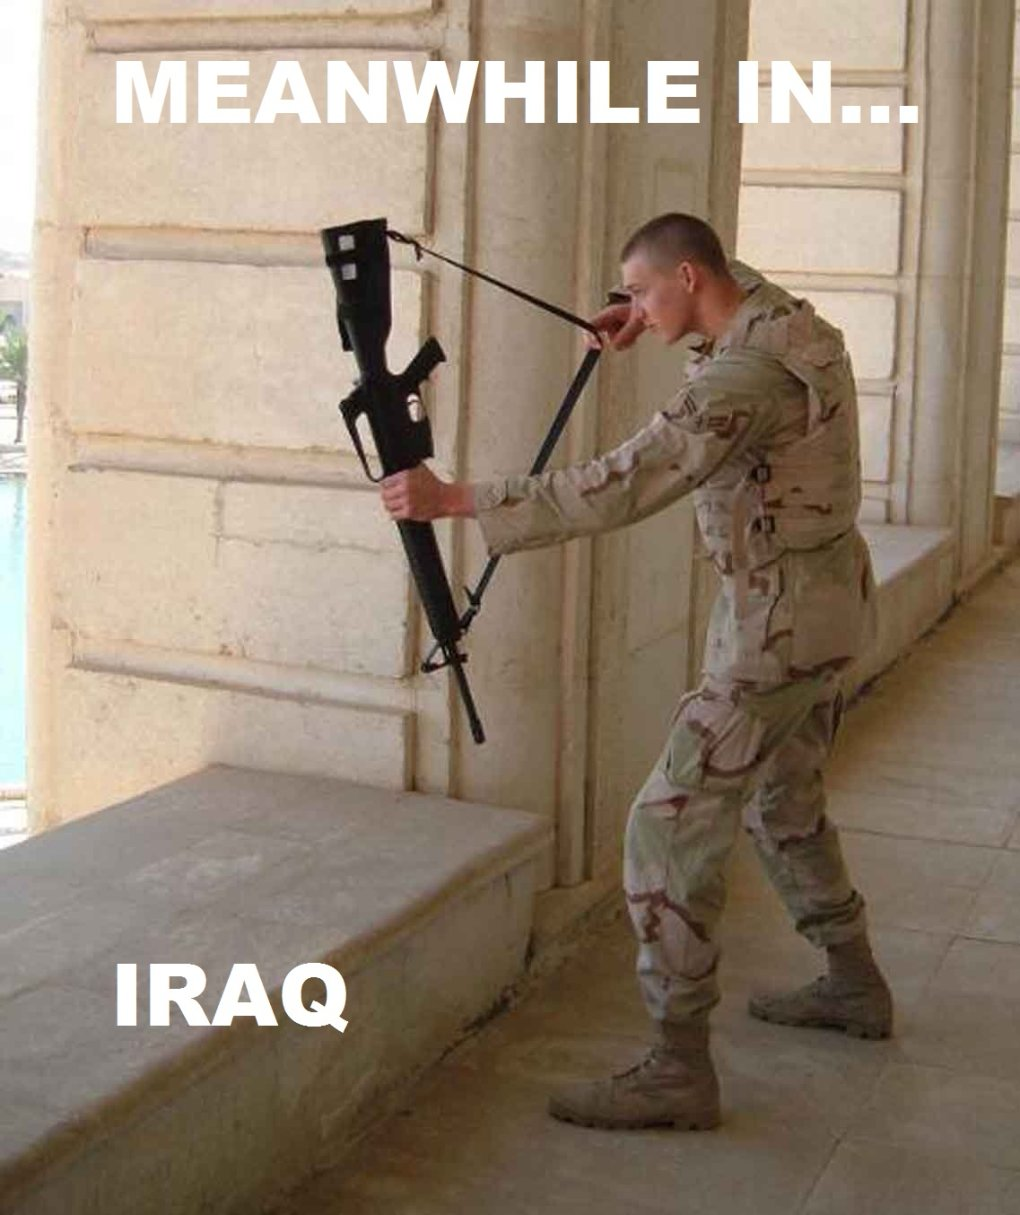 iraq - meanwhile in ...